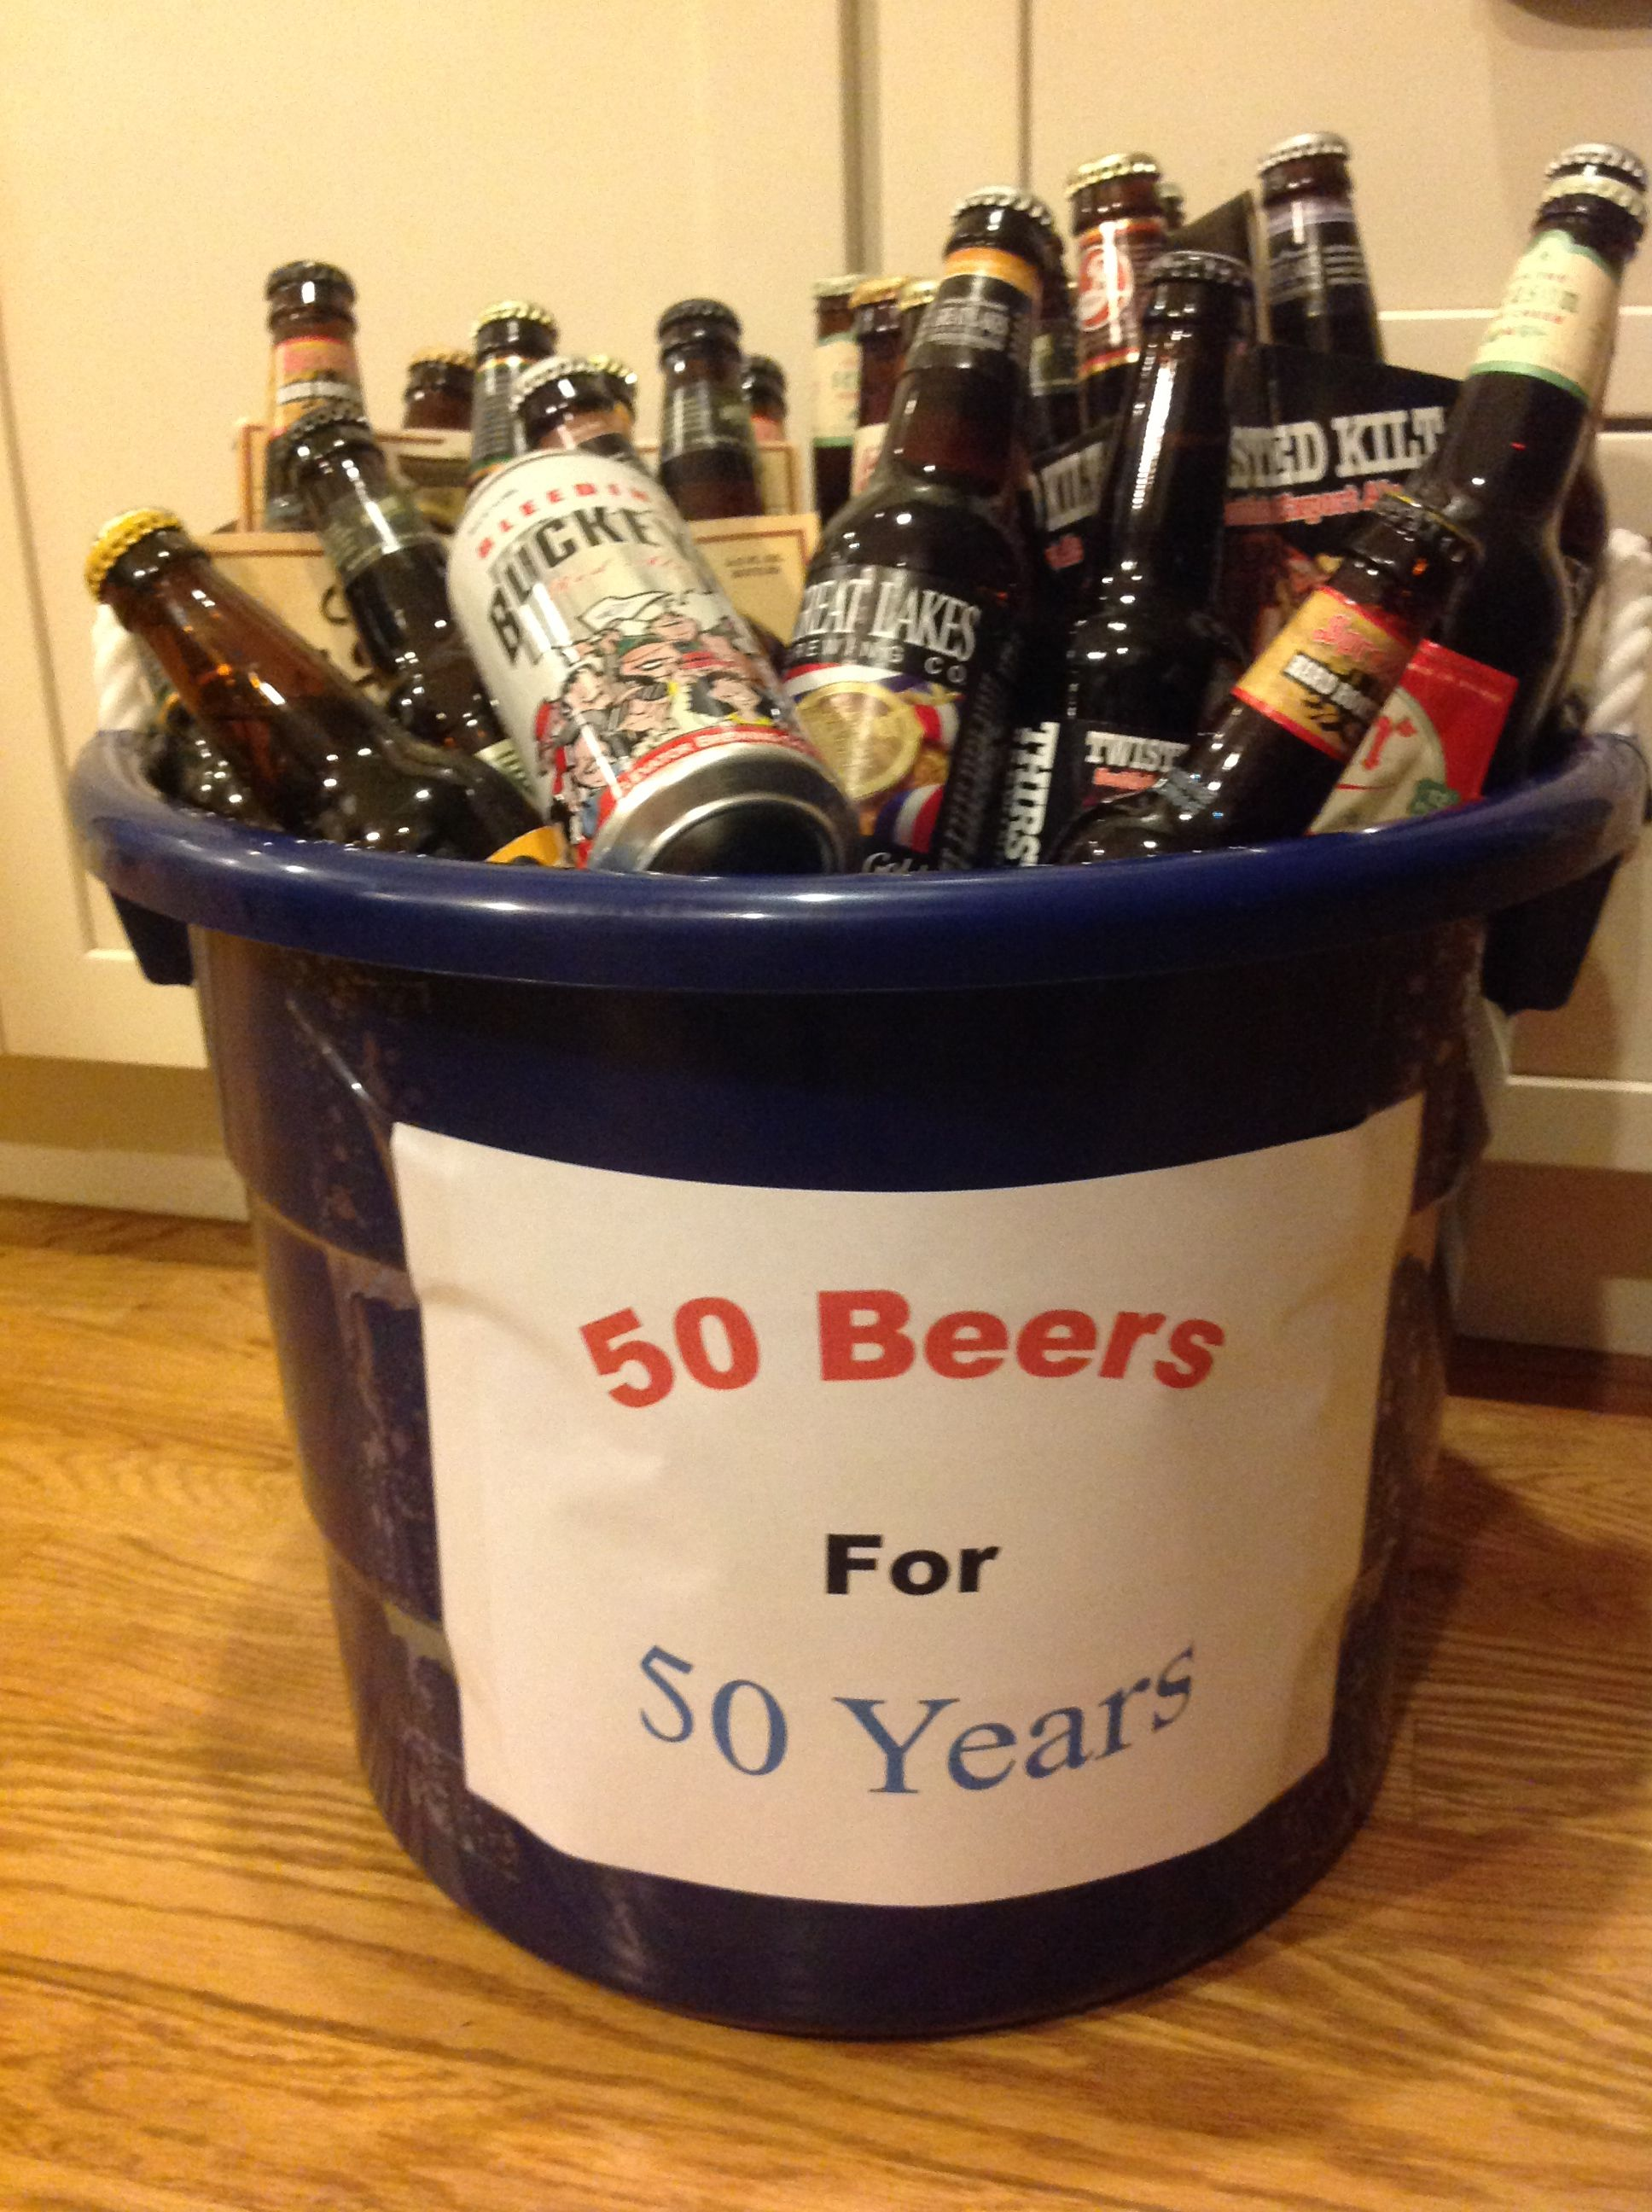 Pin by Carrie Gynn on Gifts 50th birthday party ideas